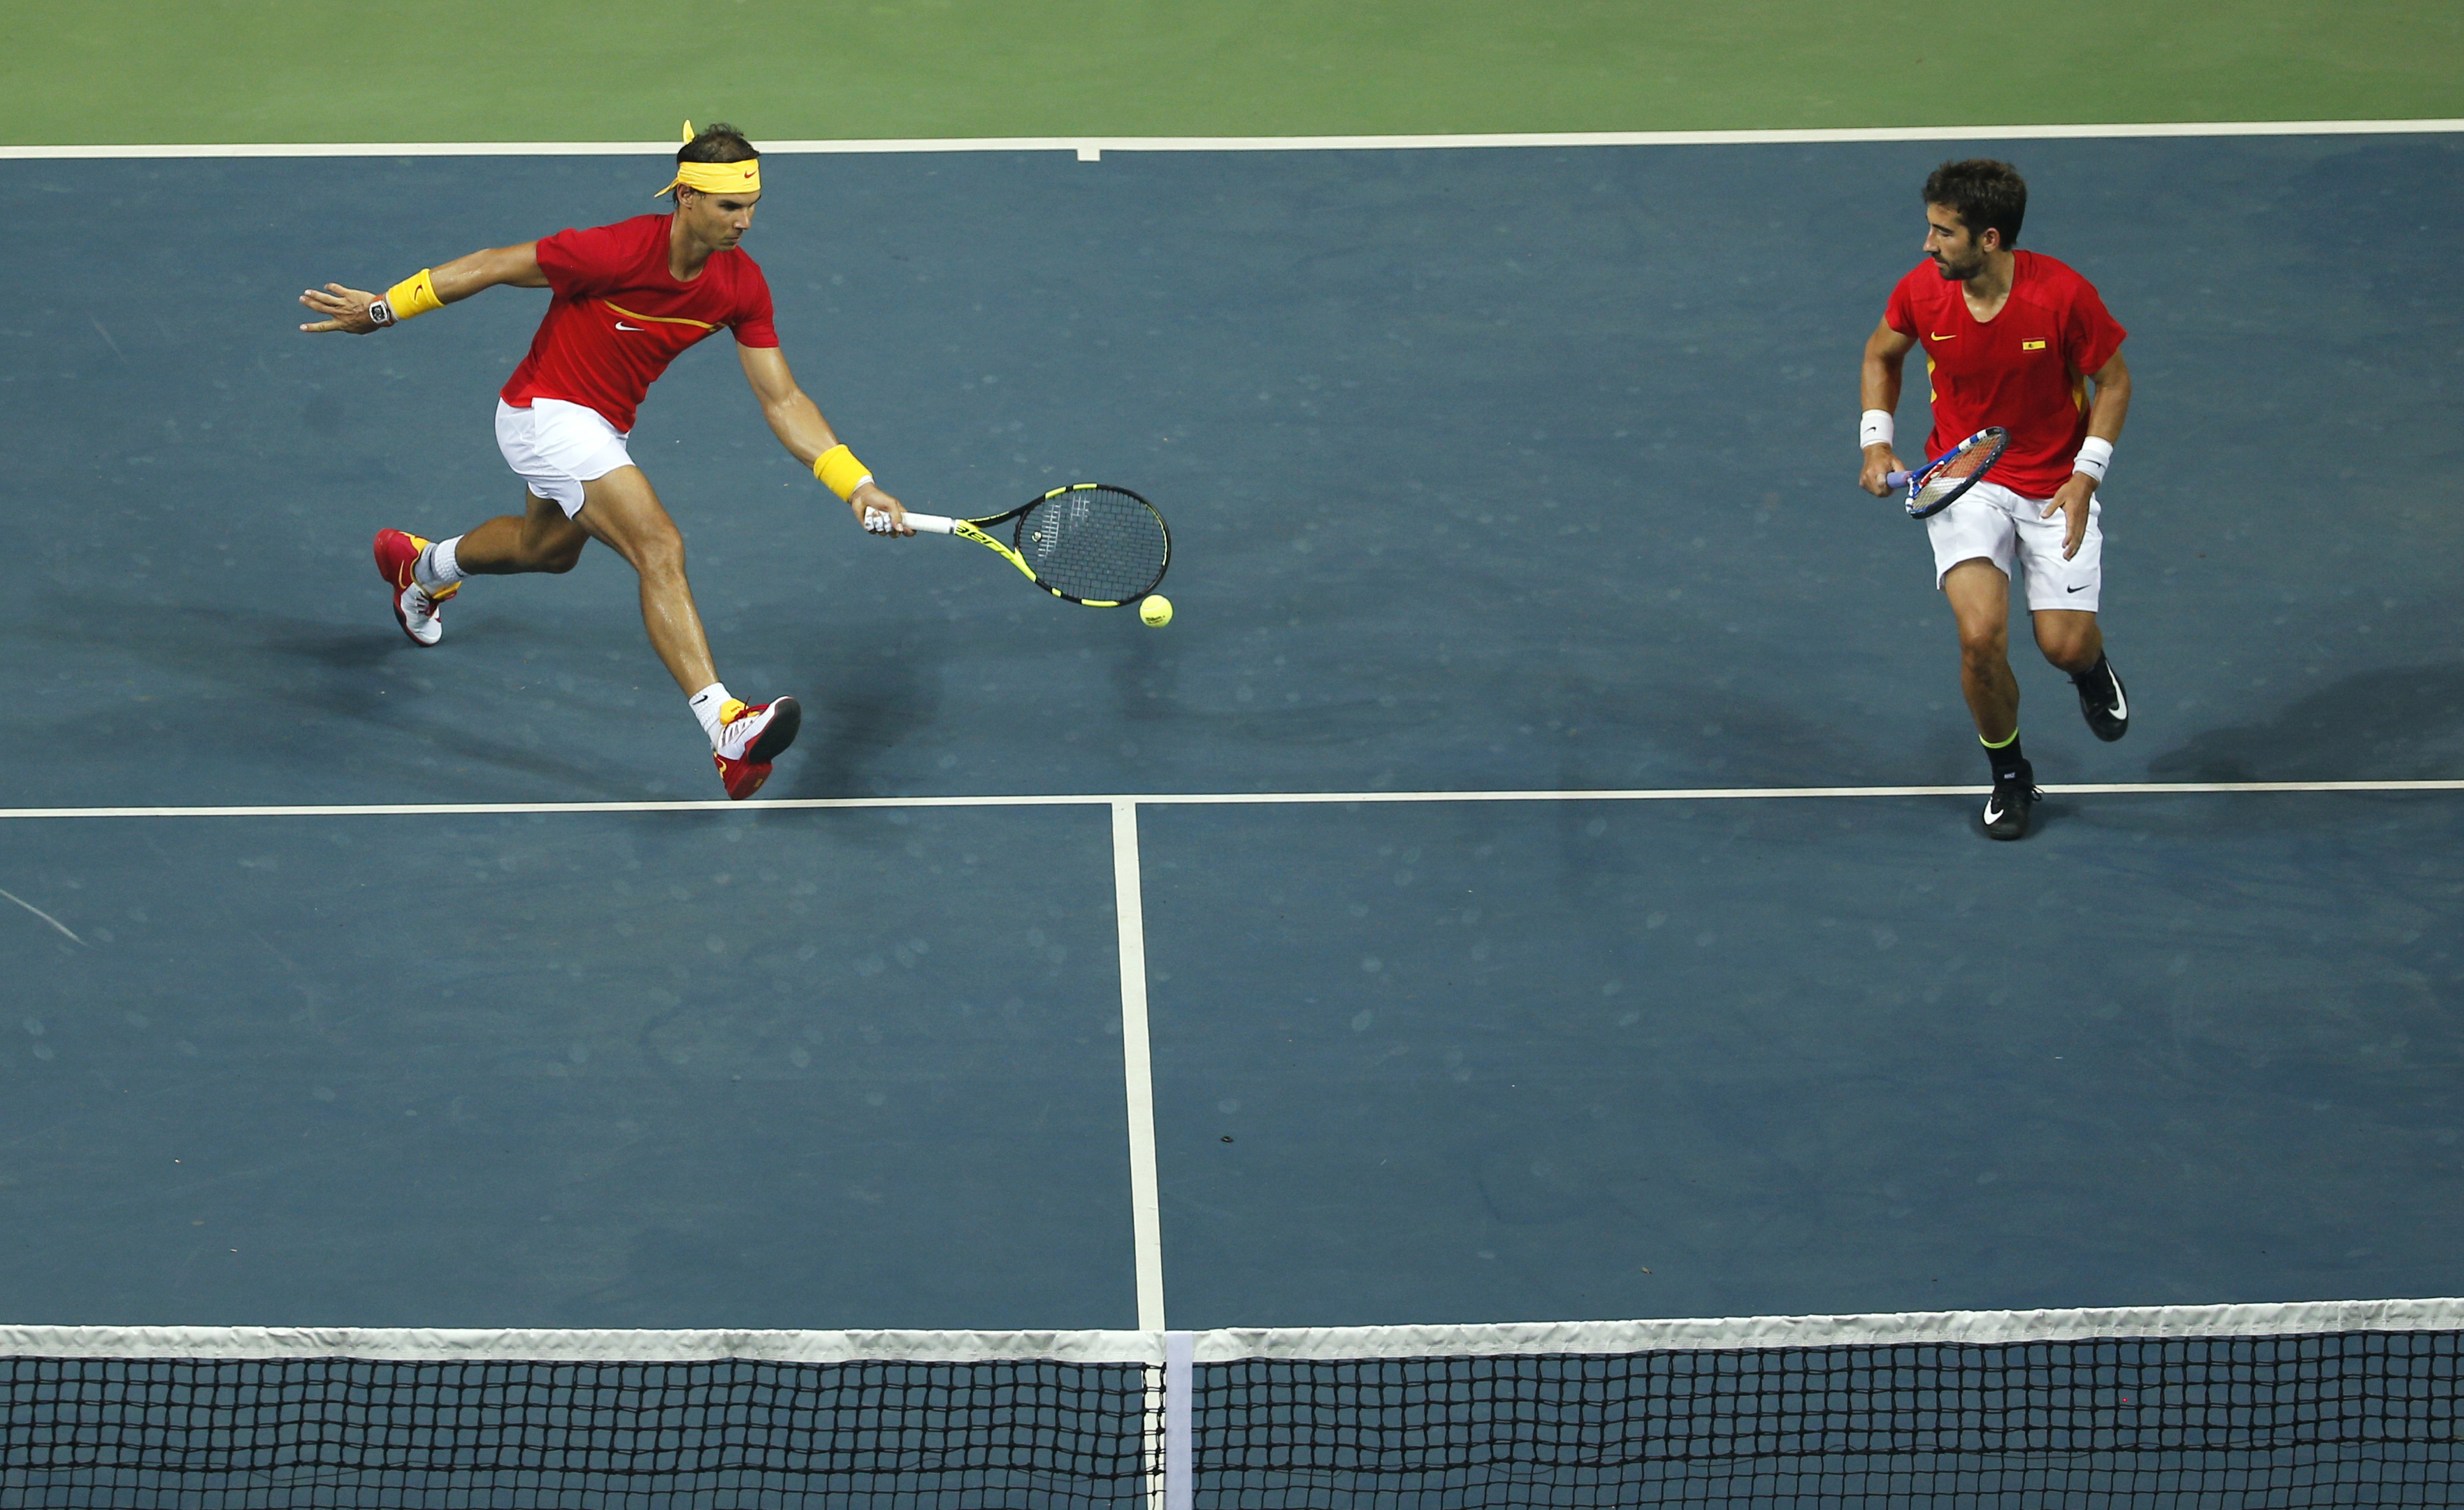 Spain's Rafael Nadal plays a shot, with compatriot Marc Lopez by his side during the Davis Cup world group play-off against India's Leander Paes and Saketh Myneni in New Delhi, India, Saturday, Sept. 17, 2016. (AP Photo/Tsering Topgyal)